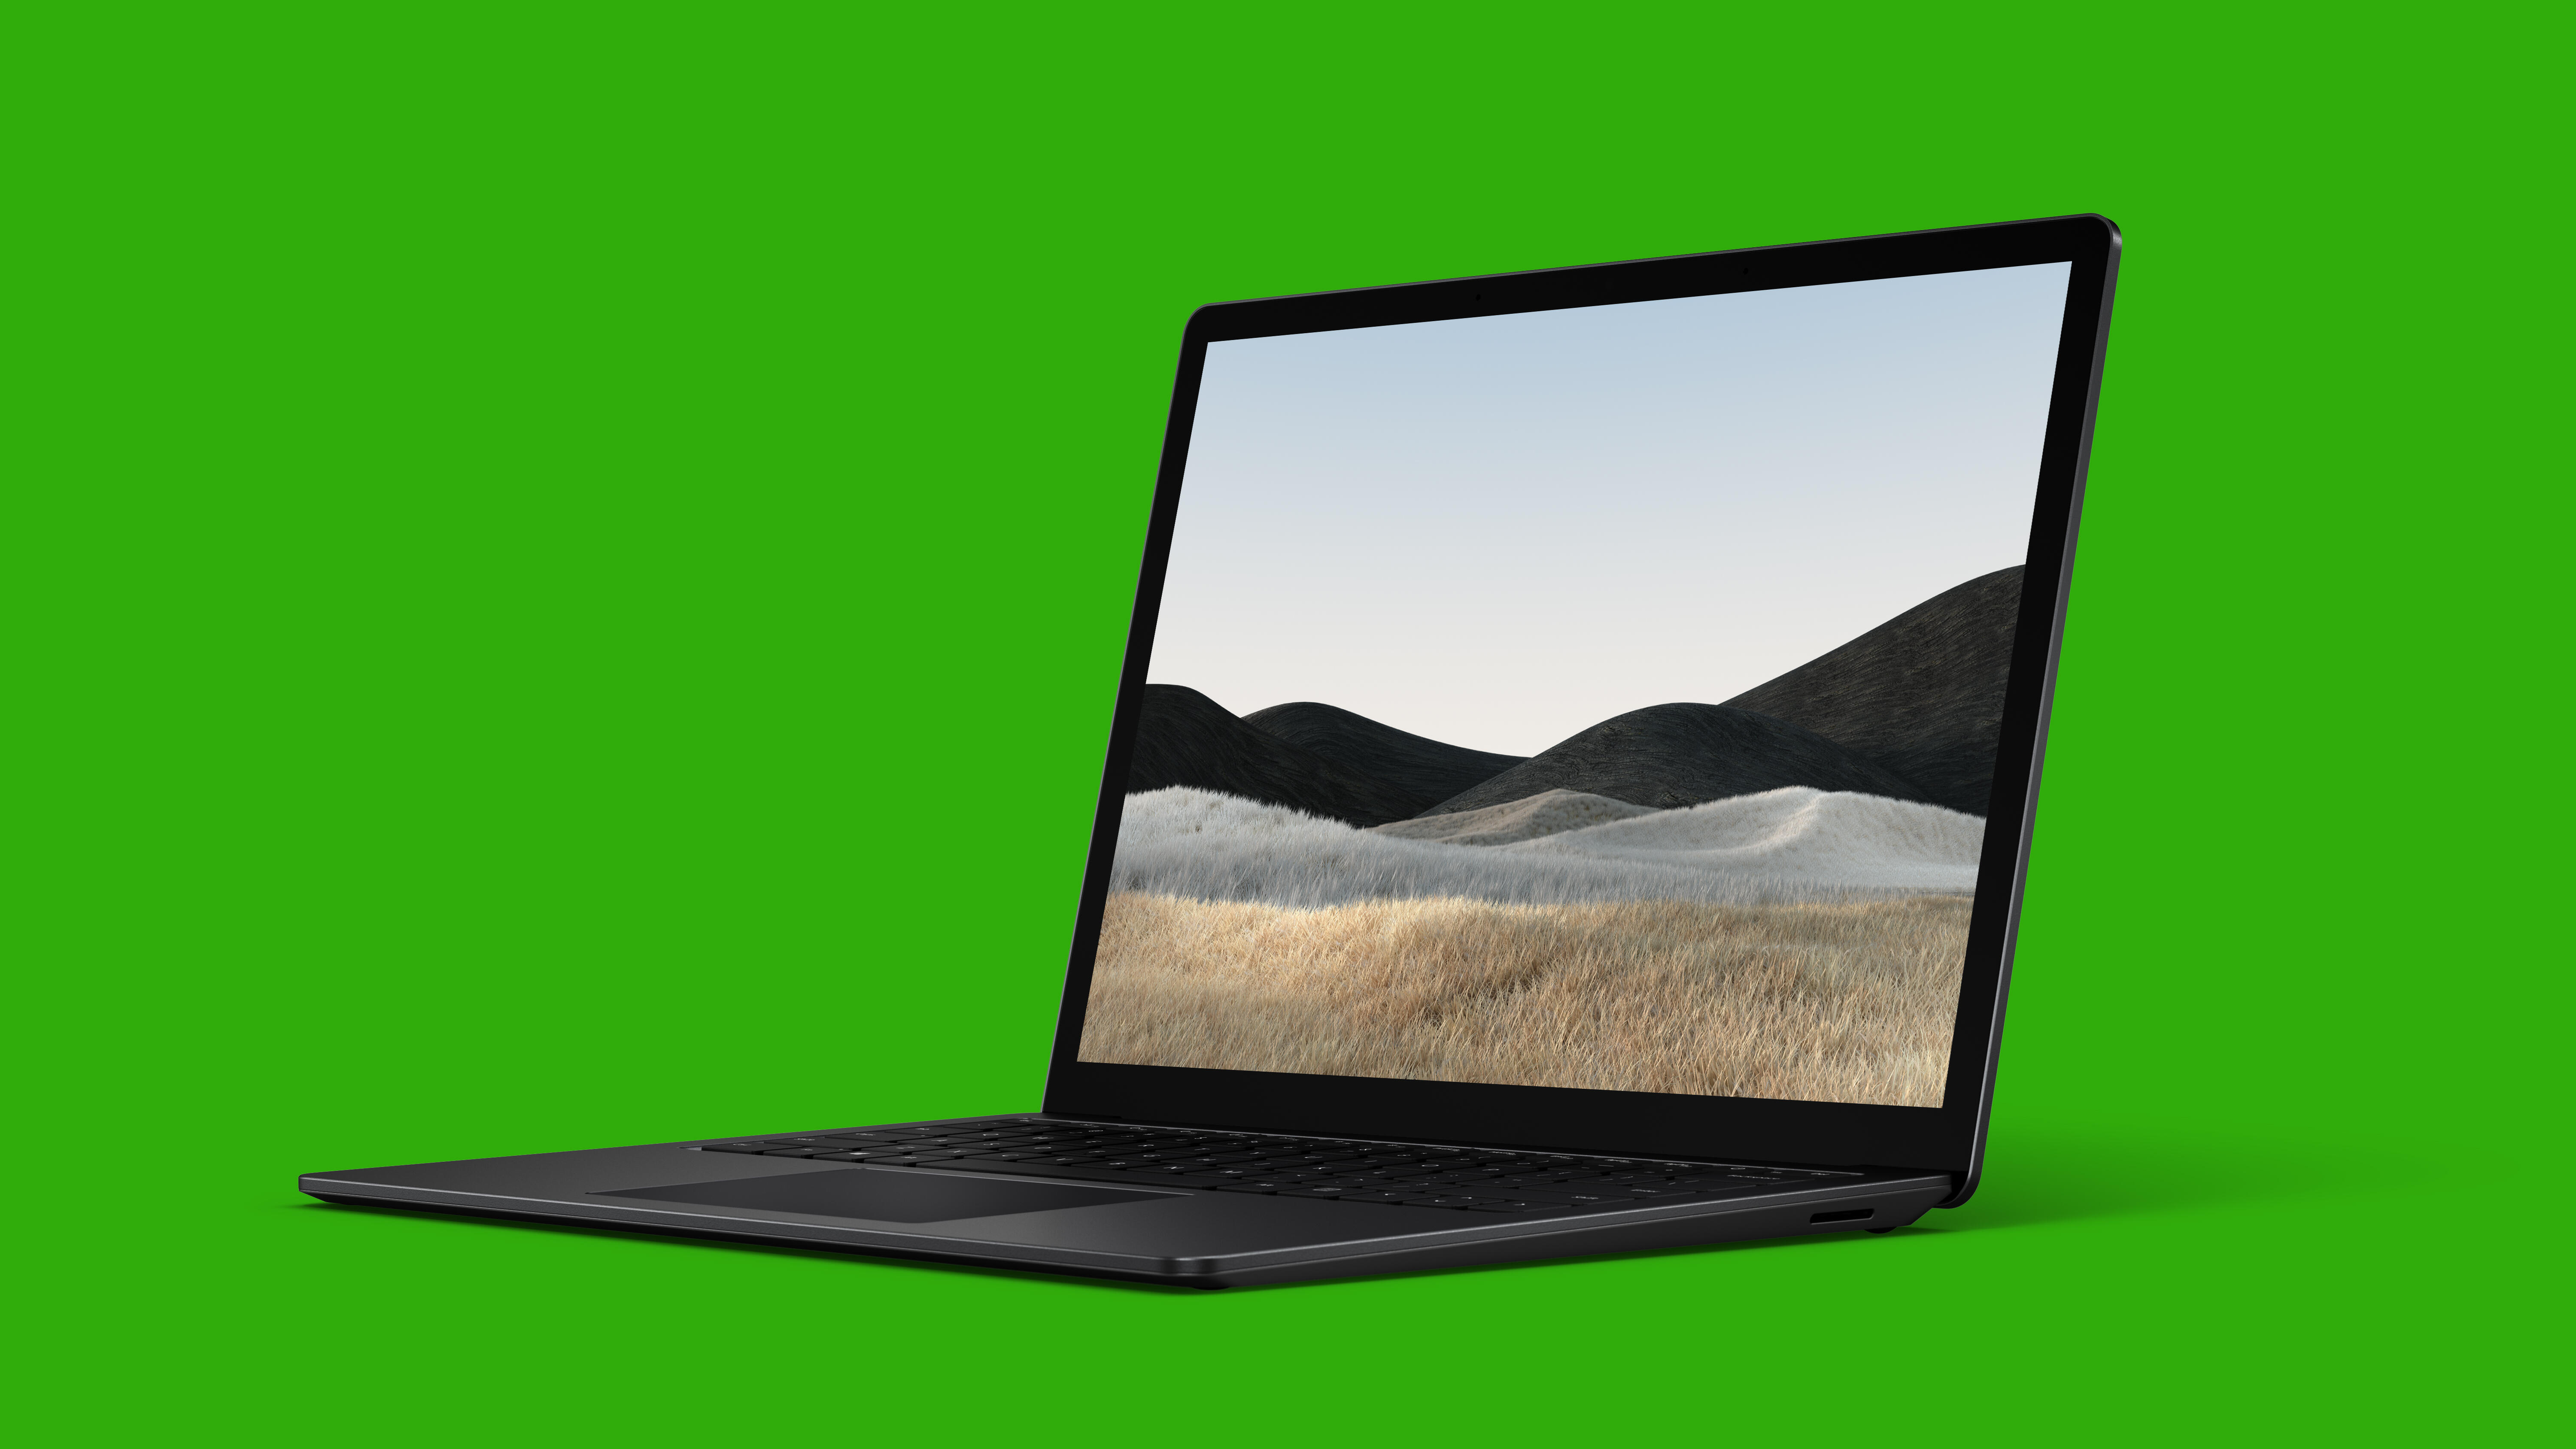 surface-laptop-4-8-green